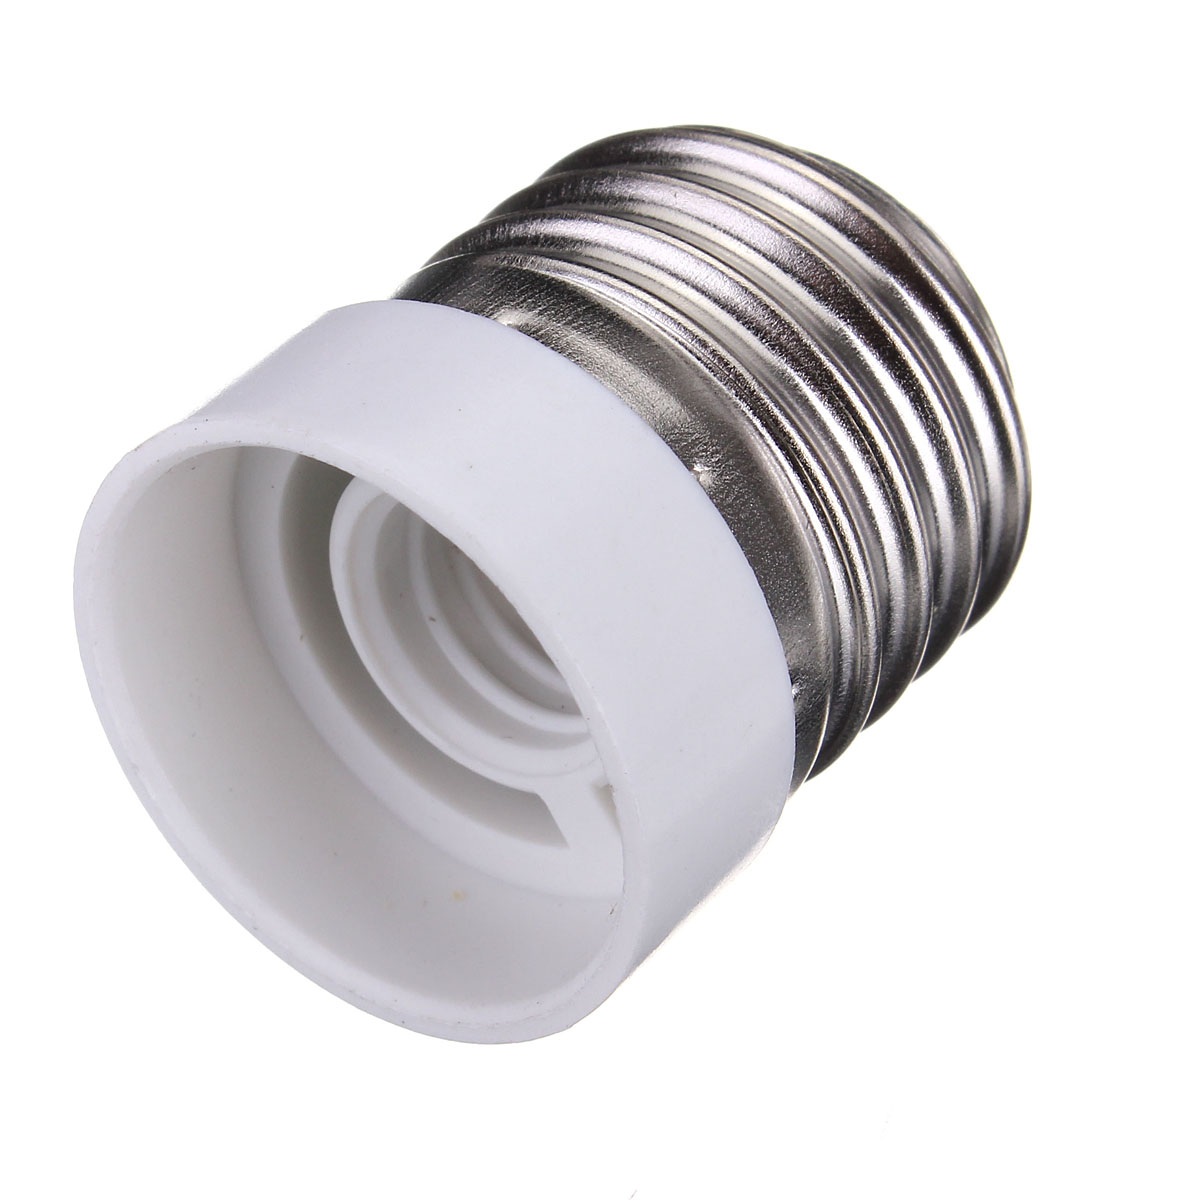 E26 to E12 Base LED Light Lamp Bulb Screw Adapter ...